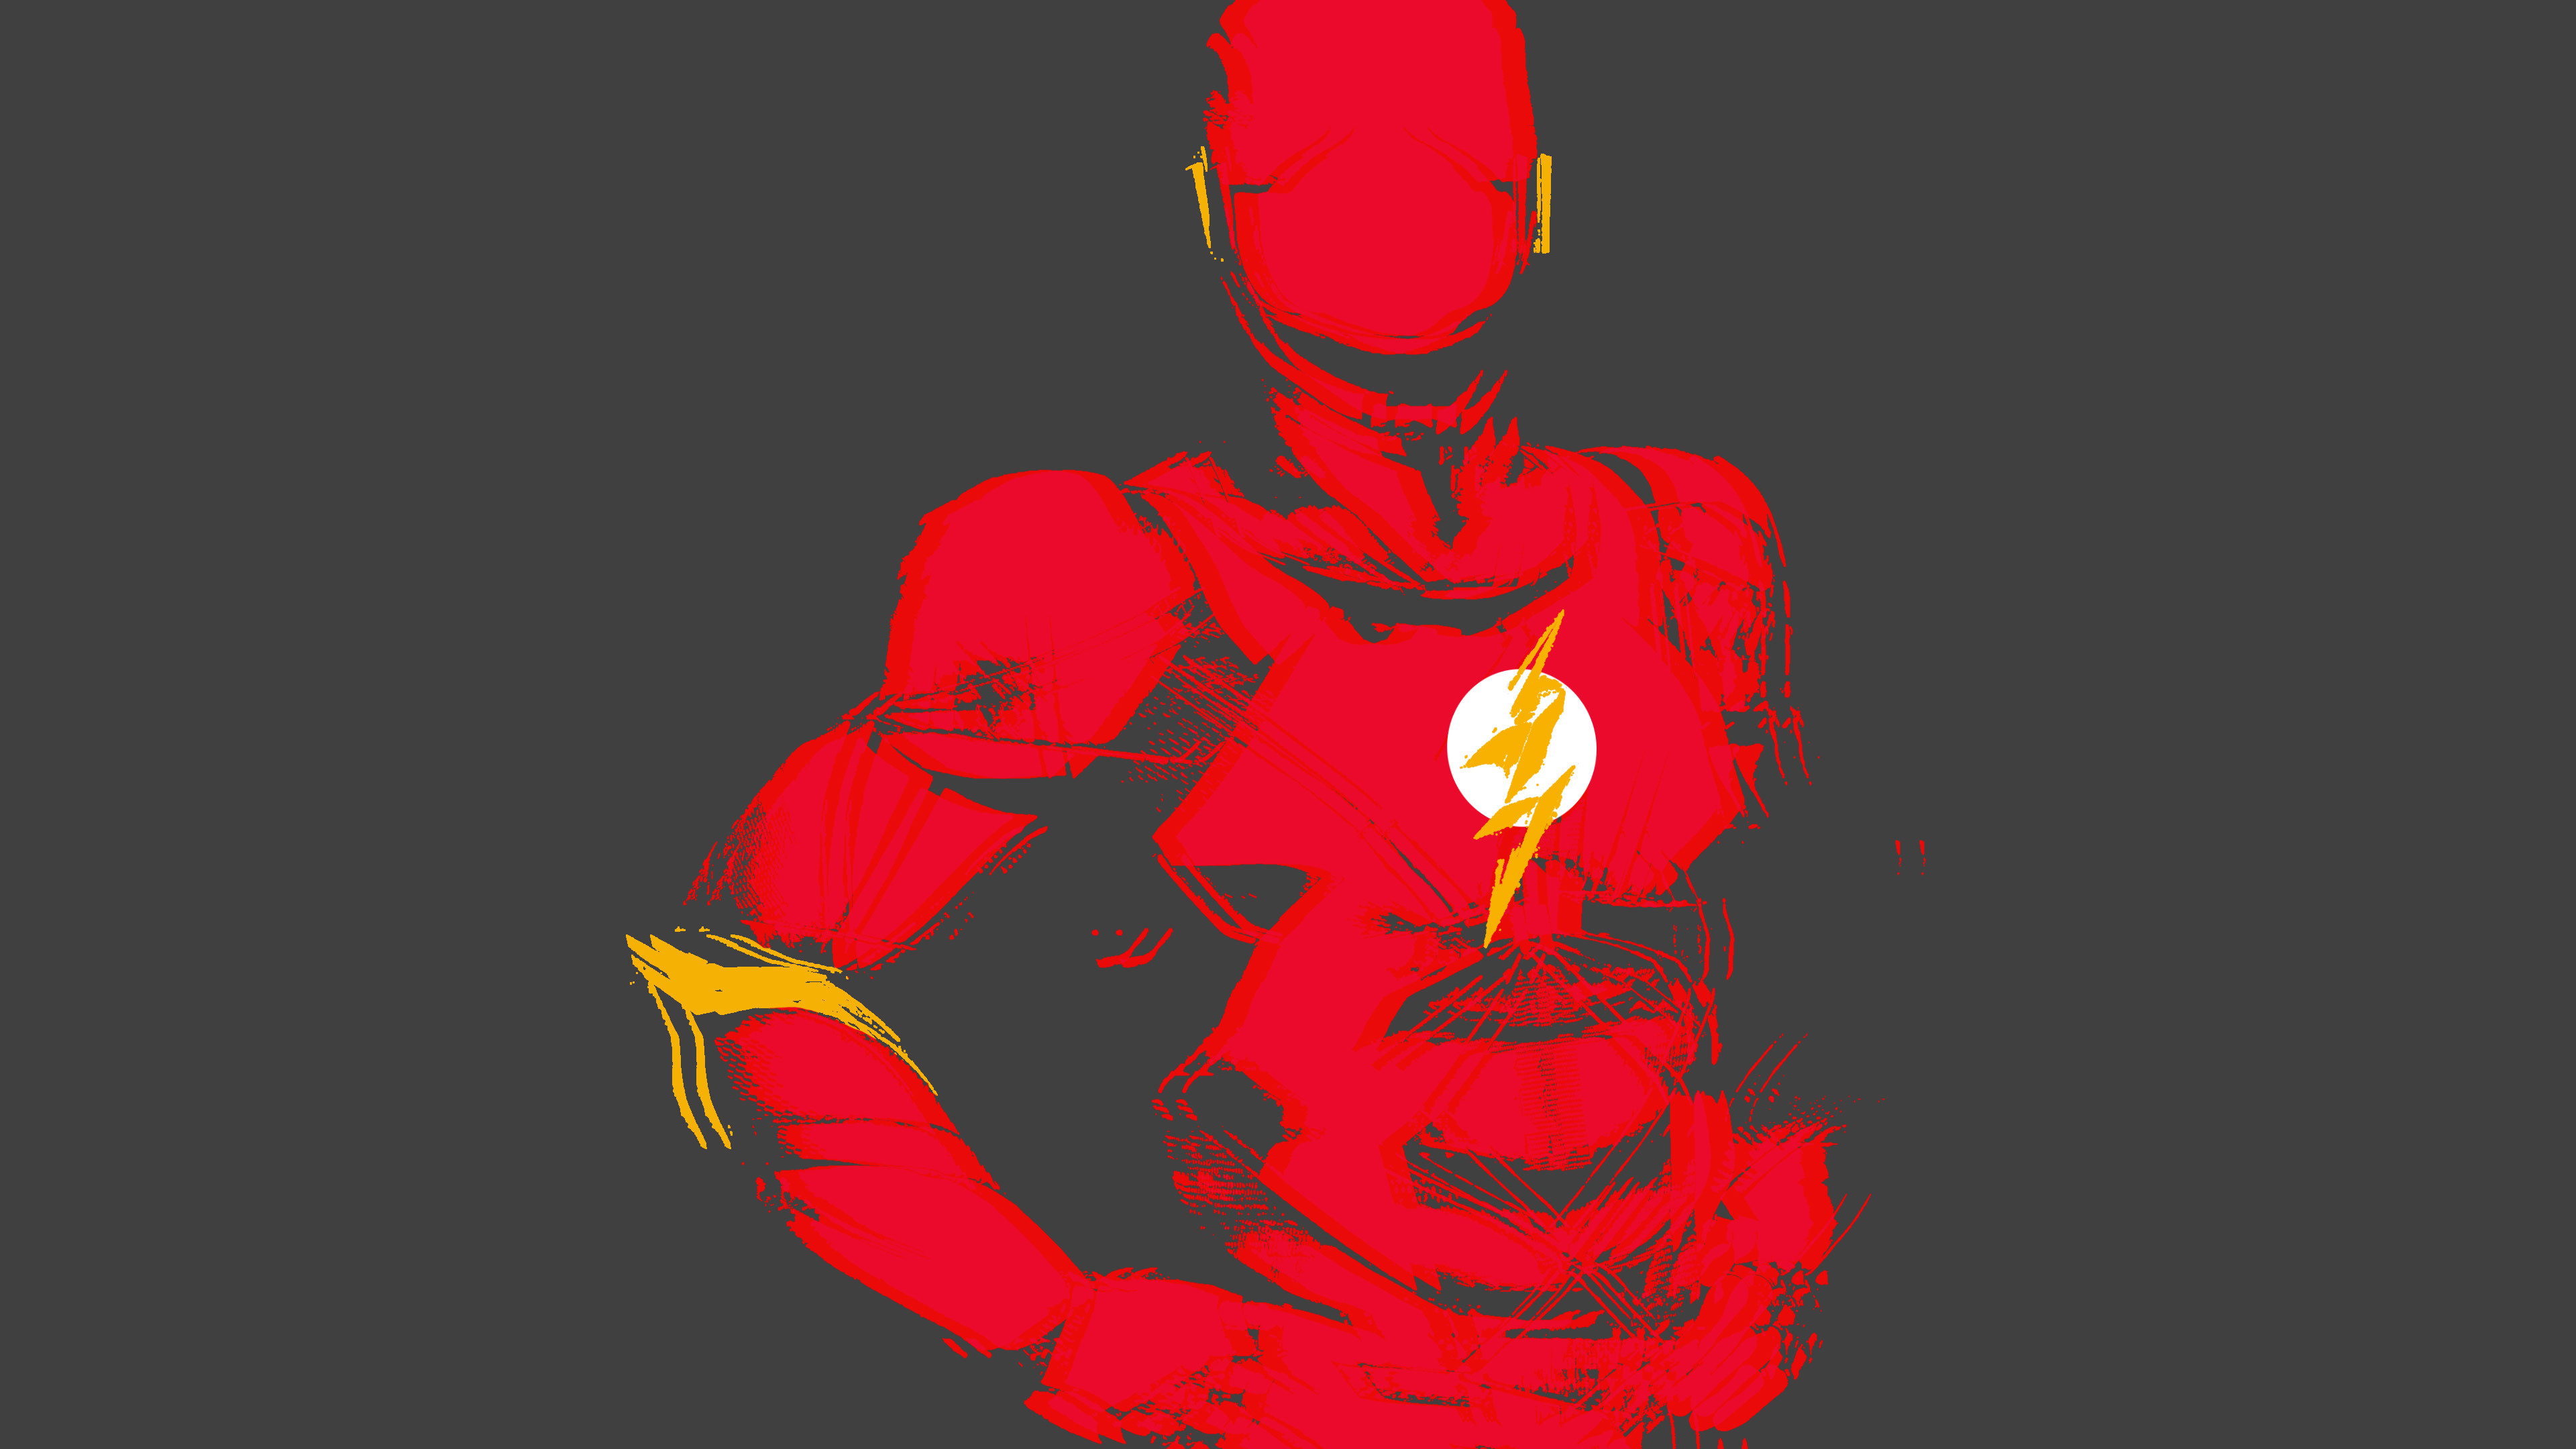 flash minimalist 1536507773 - Flash Minimalist - superheroes wallpapers, hd-wallpapers, flash wallpapers, digital art wallpapers, artwork wallpapers, artist wallpapers, 4k-wallpapers